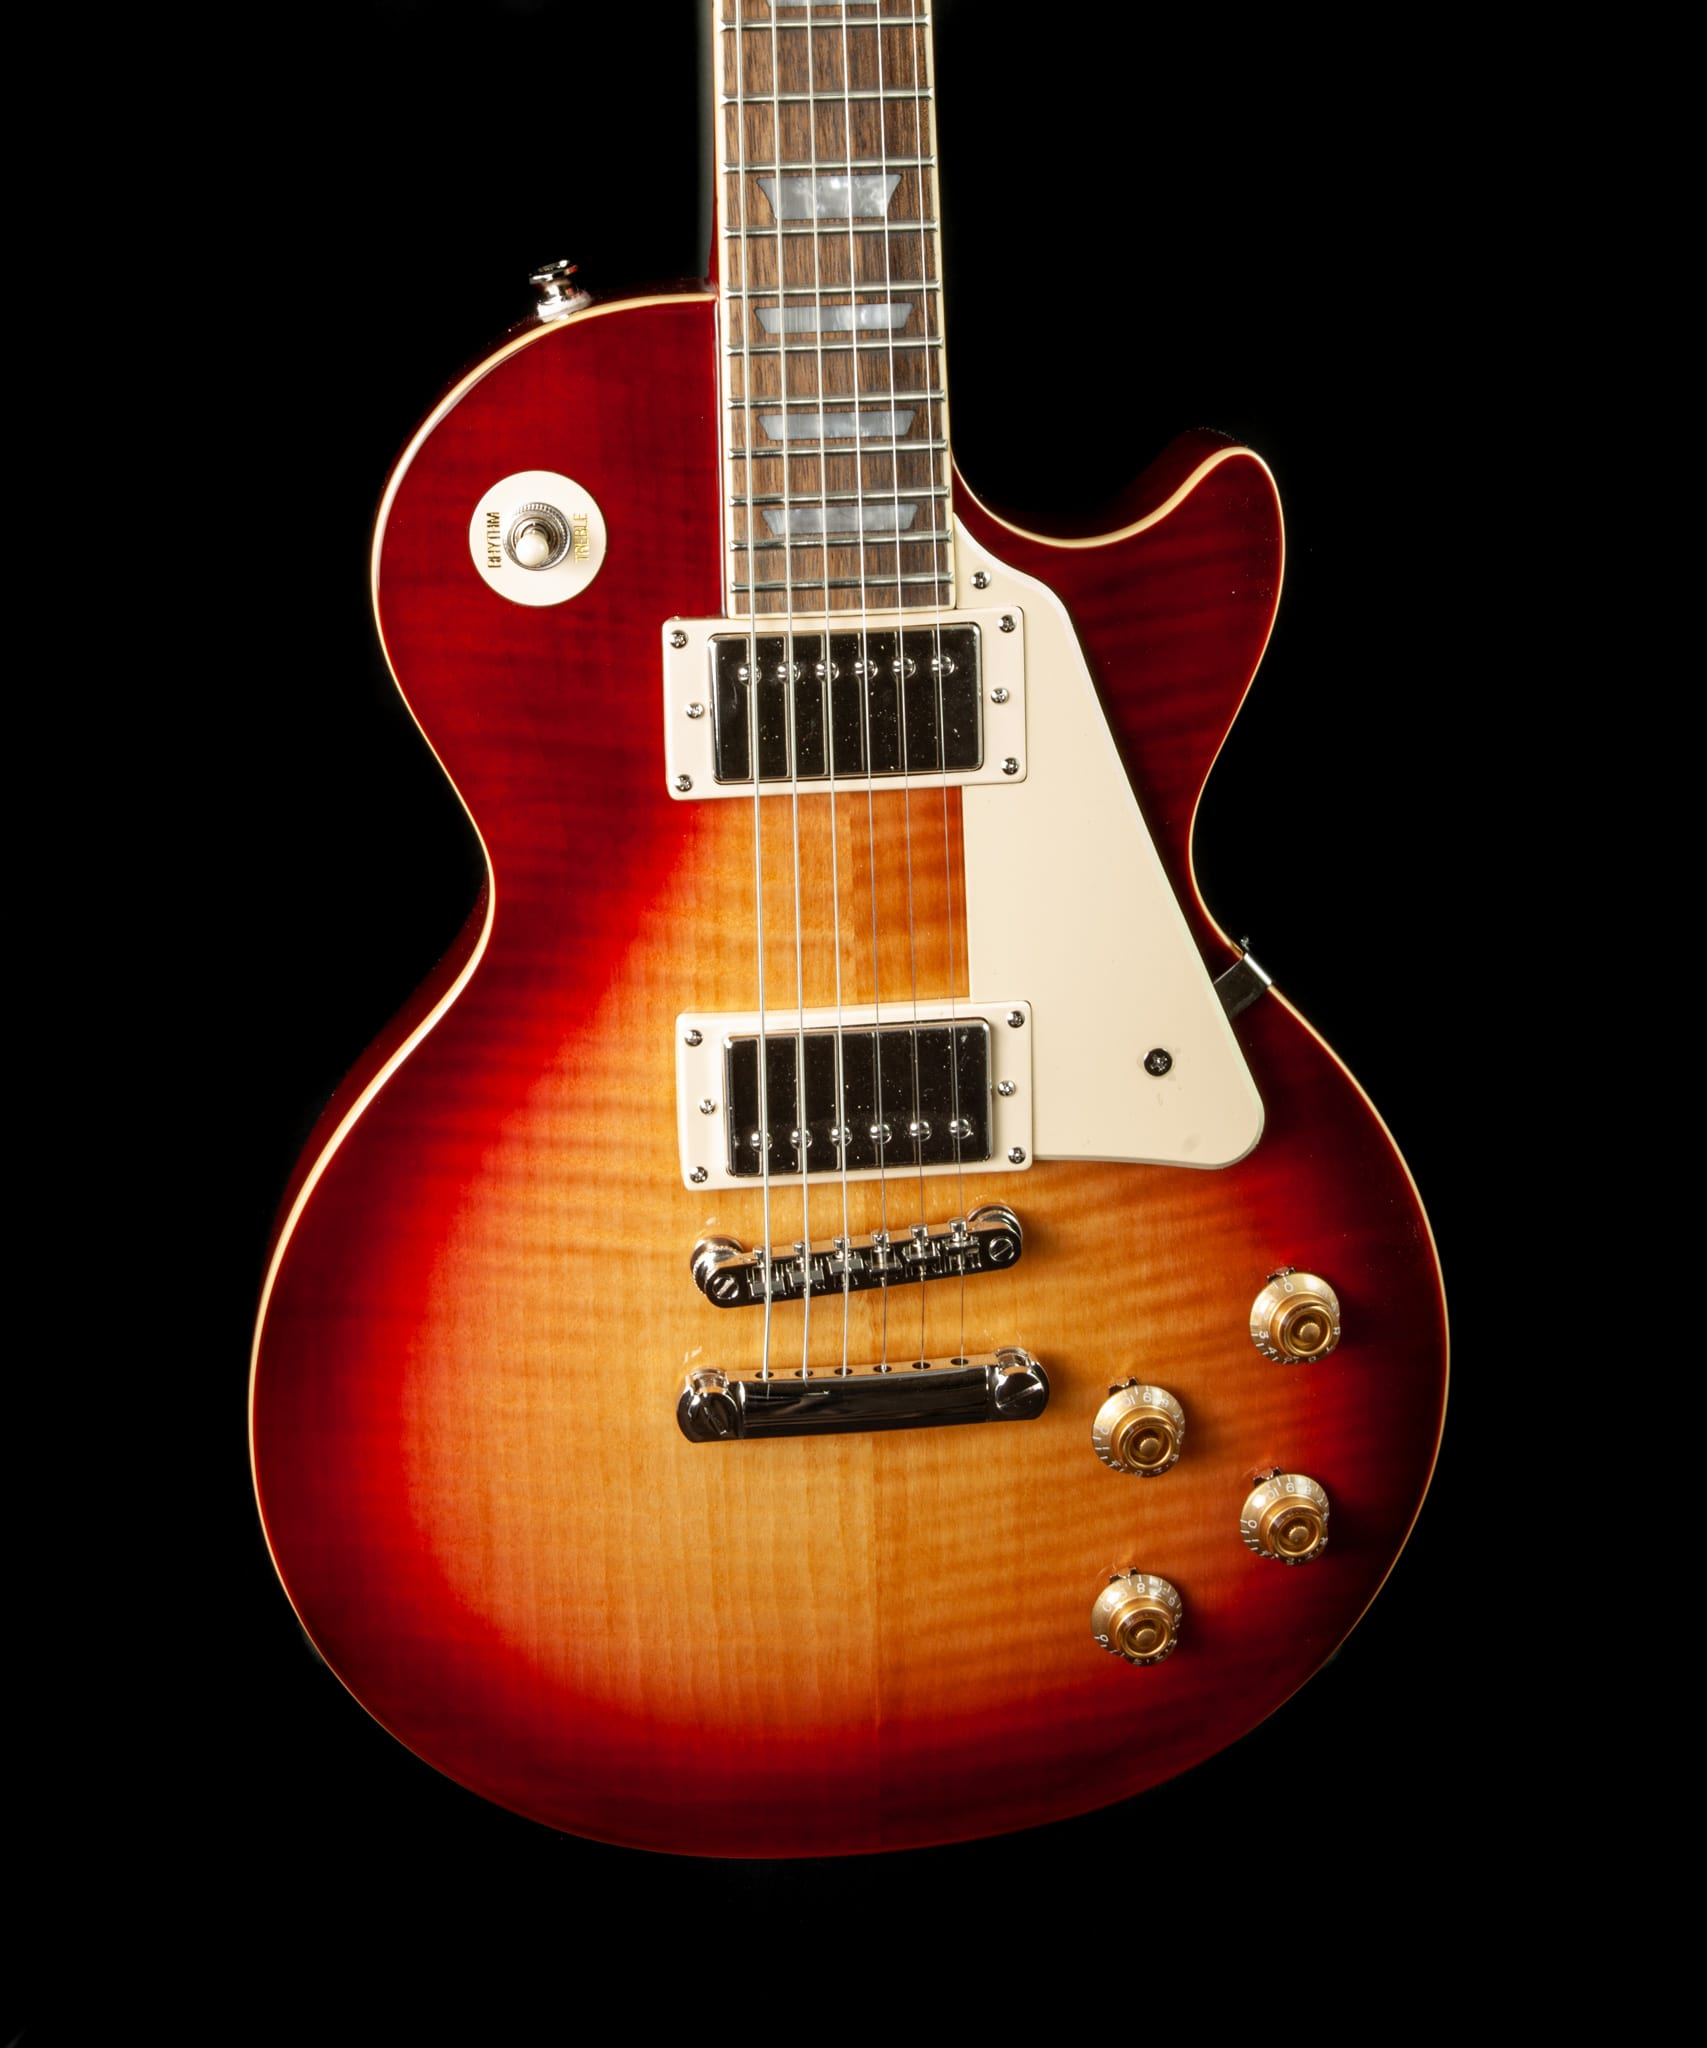 Epiphone -Inspired by Gibson- Les Paul Standard 50s in Heritage Cherry Sunburst